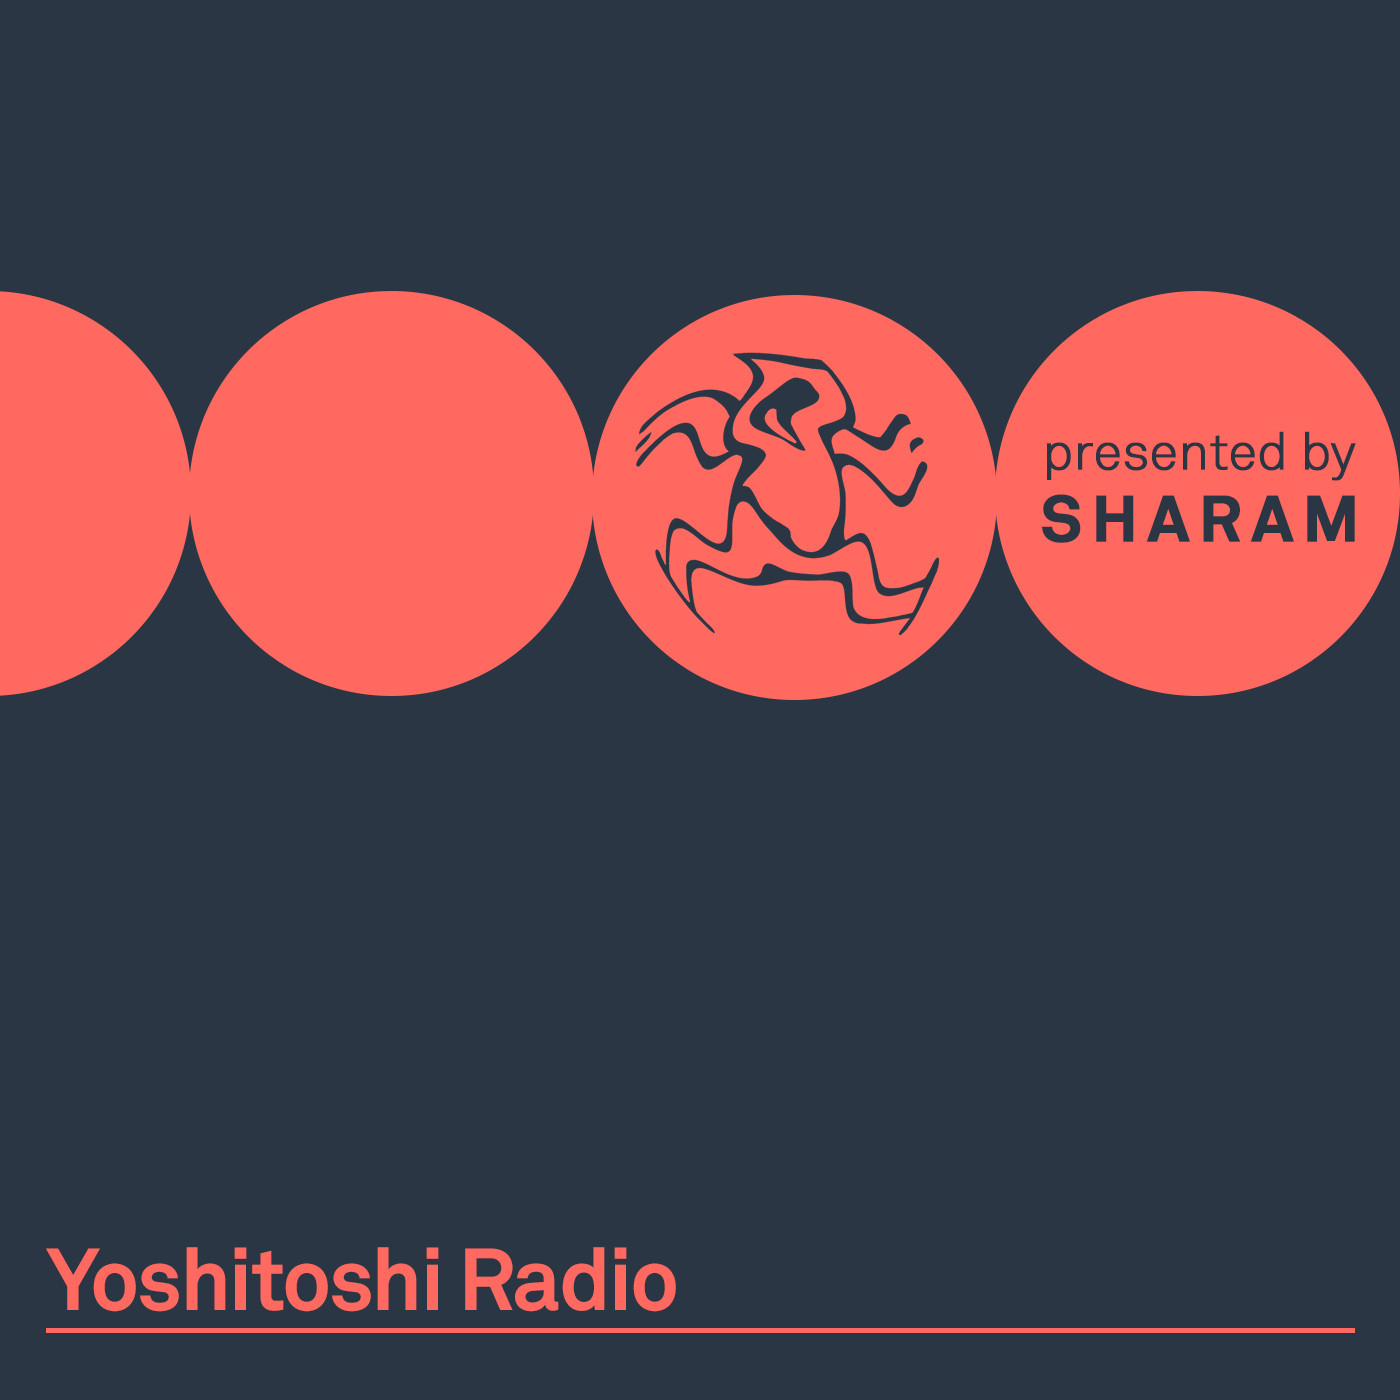 Yoshitoshi Radio - Presented By SHARAM